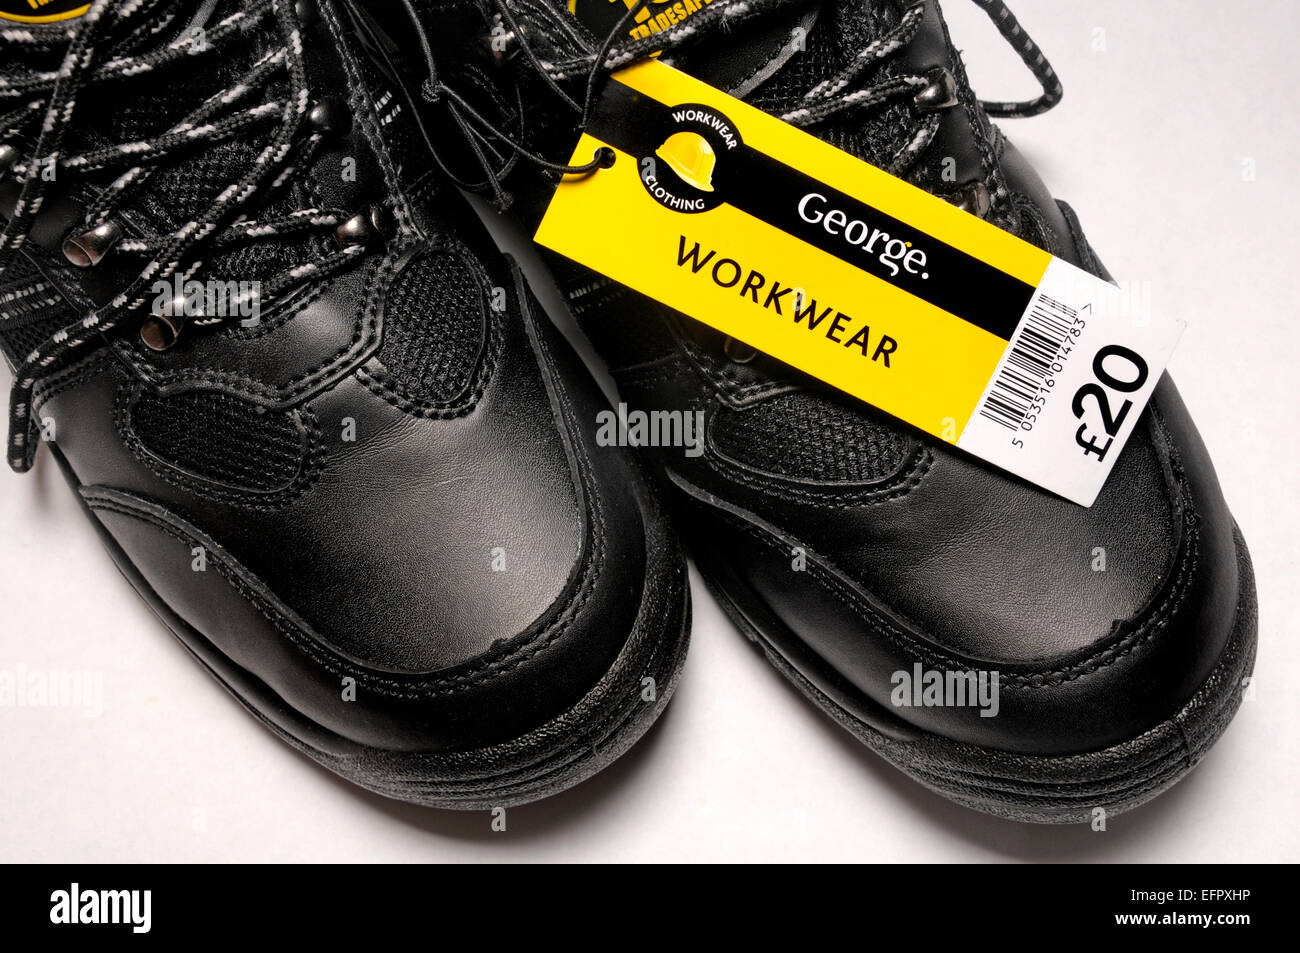 Cheap shoes (£20) bought at Asda (UK) - Stock Image